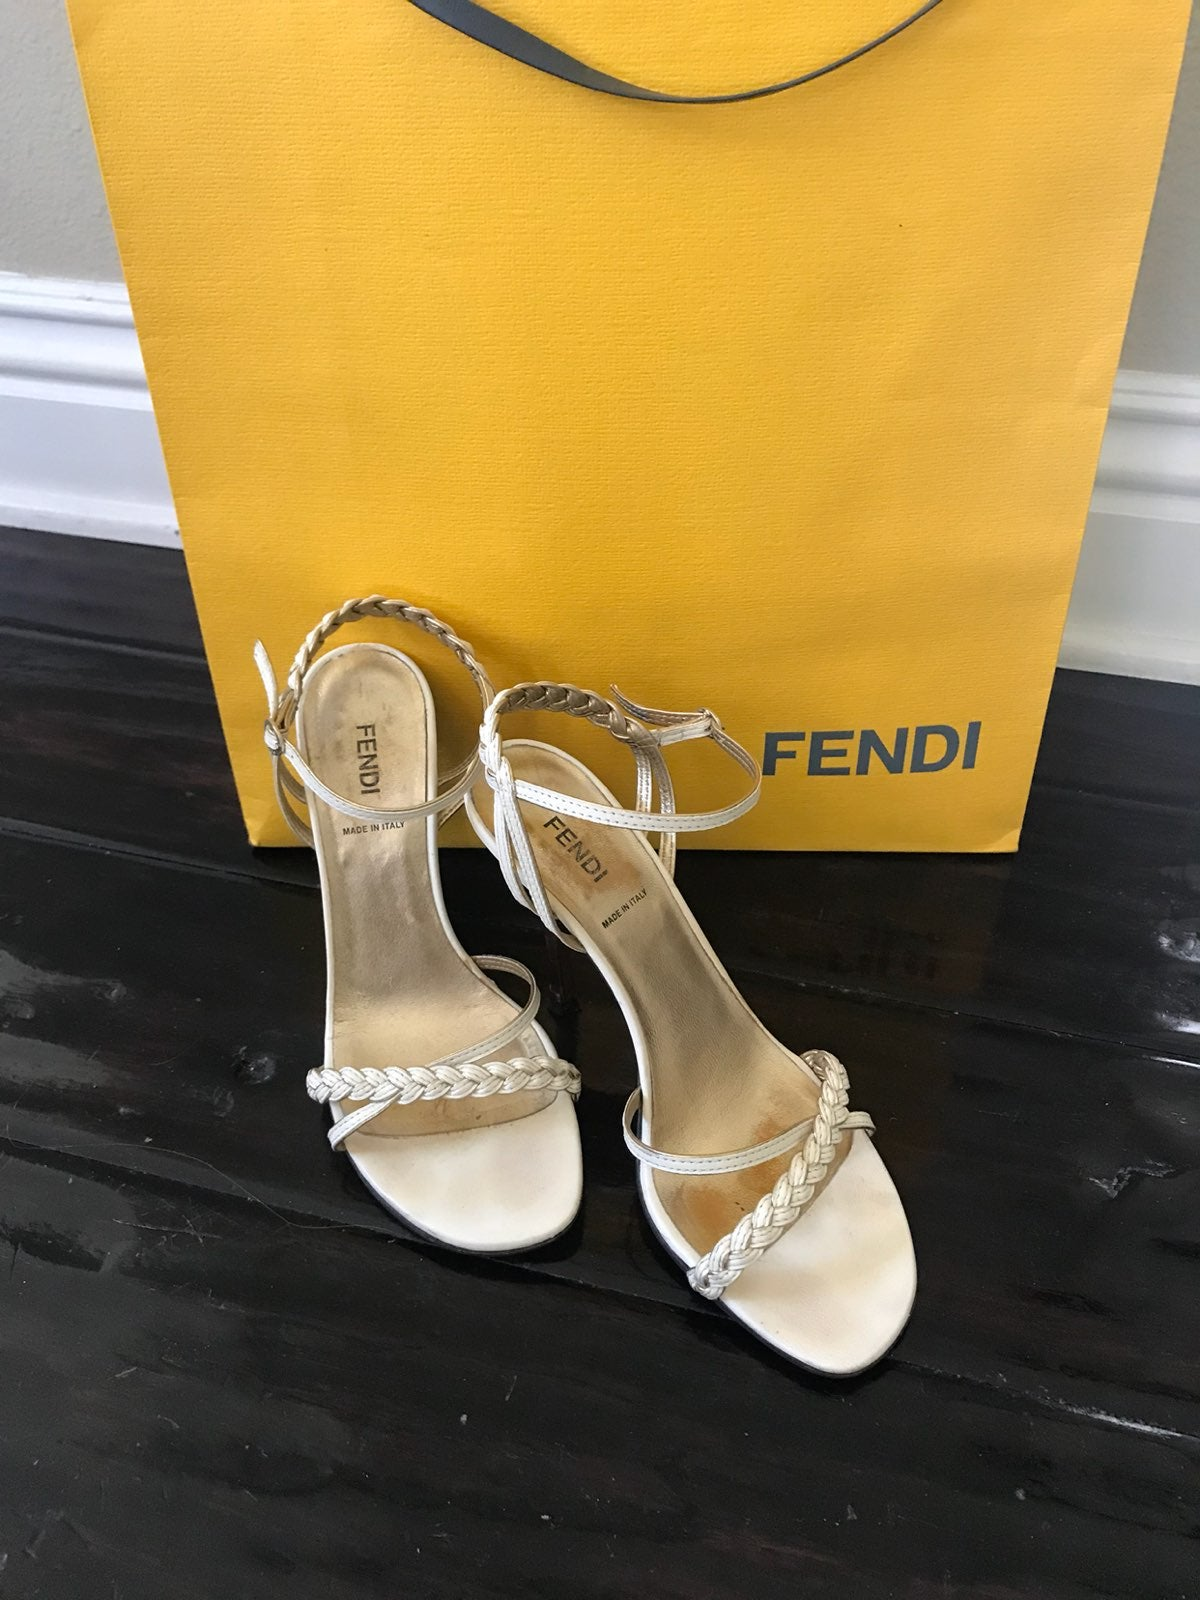 Fendi Braided Sandals Cream/Gold